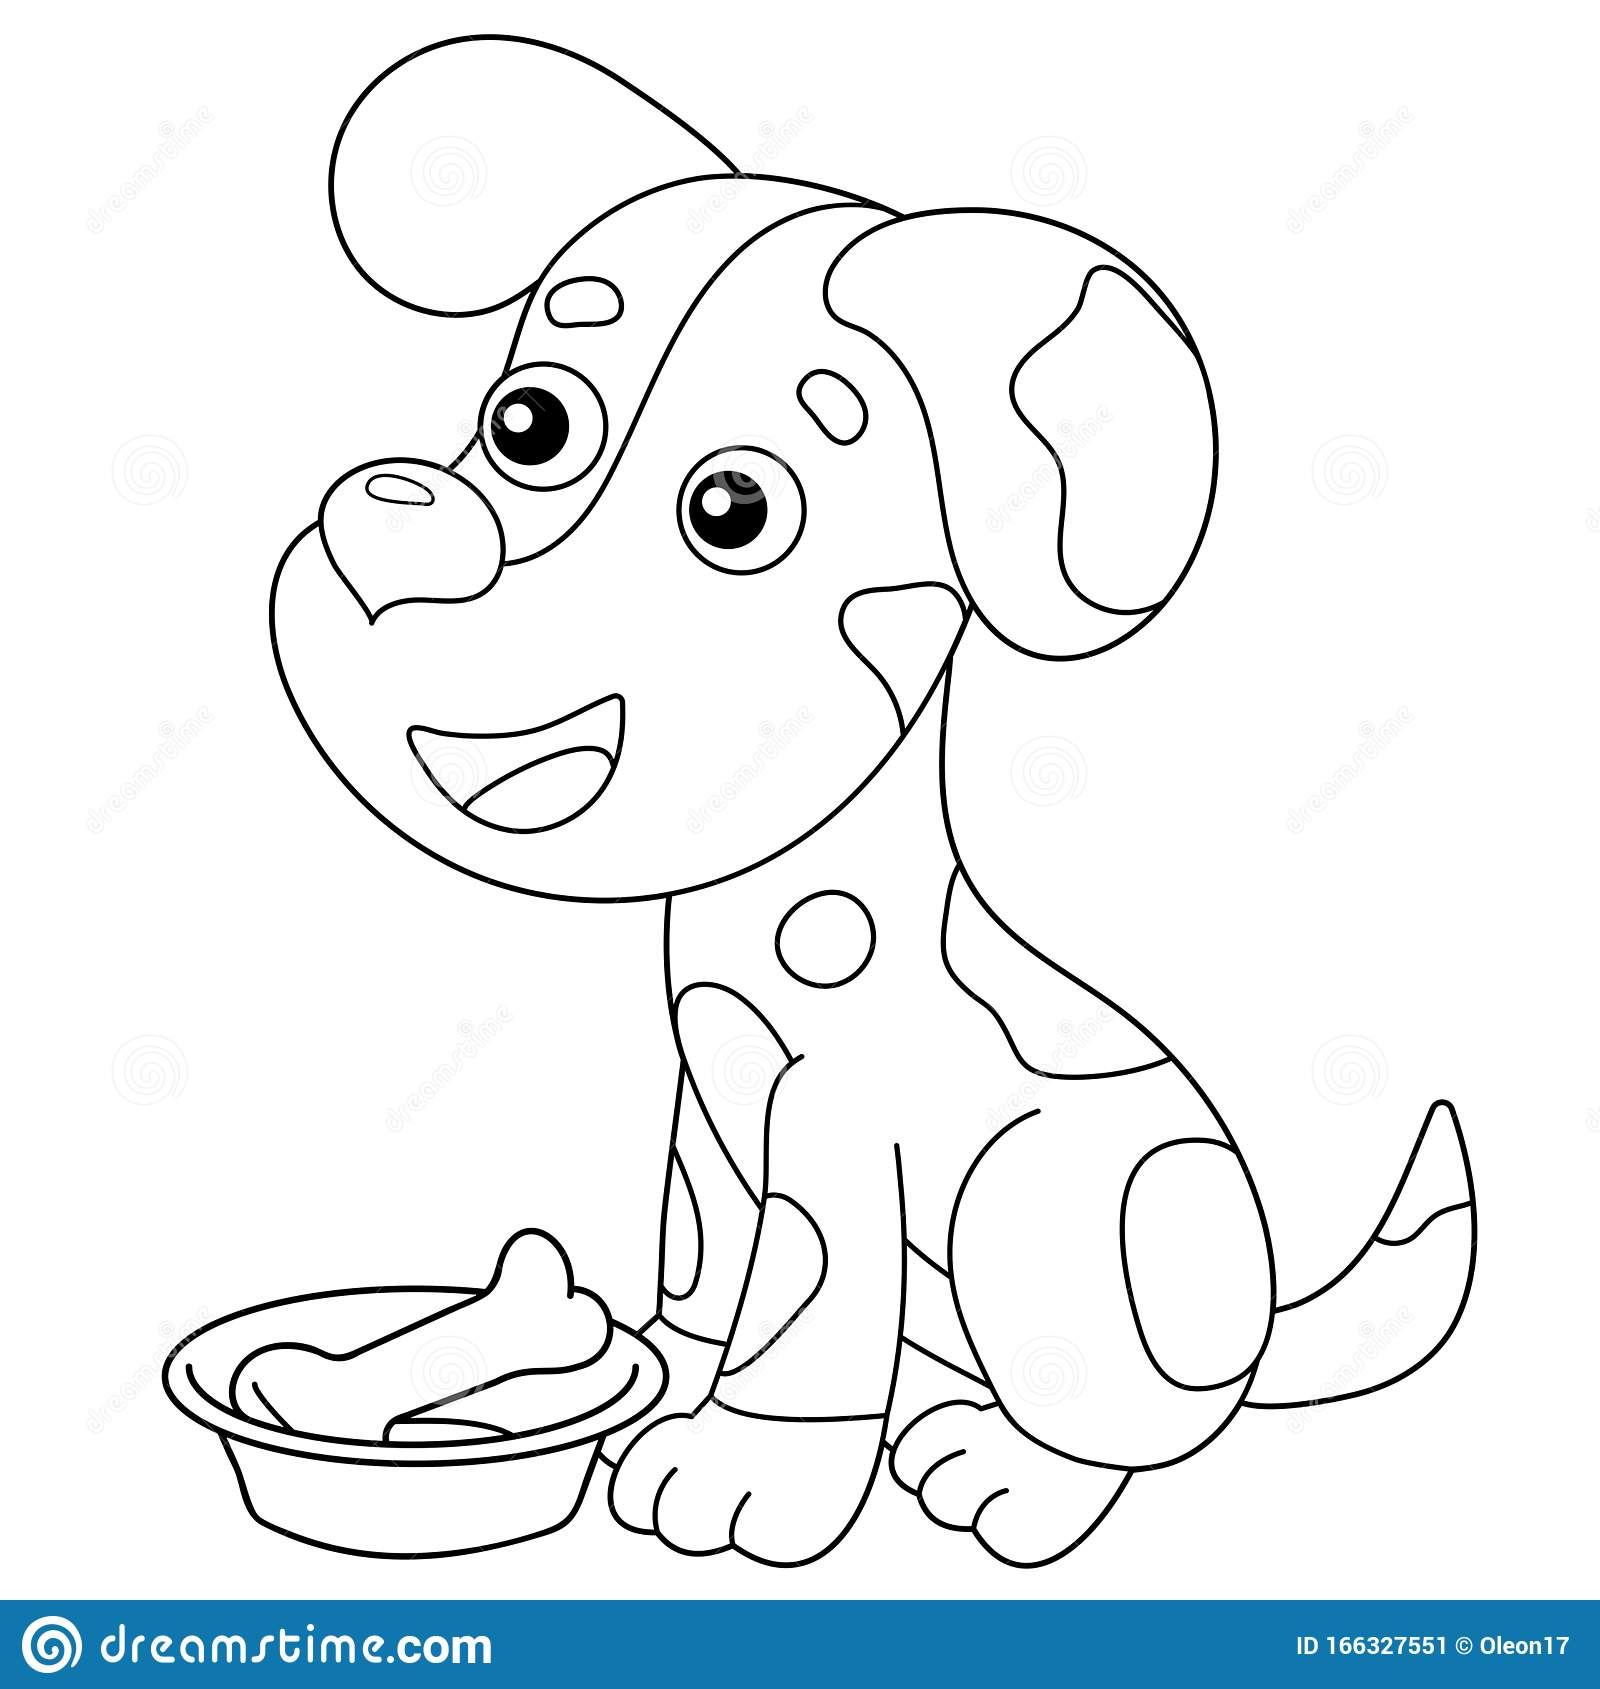 Coloring Page Outline Of Cartoon Dog With Bone Pets Coloring Book For Kids Stock Vector Illustration Of Cute Colouring 166327551